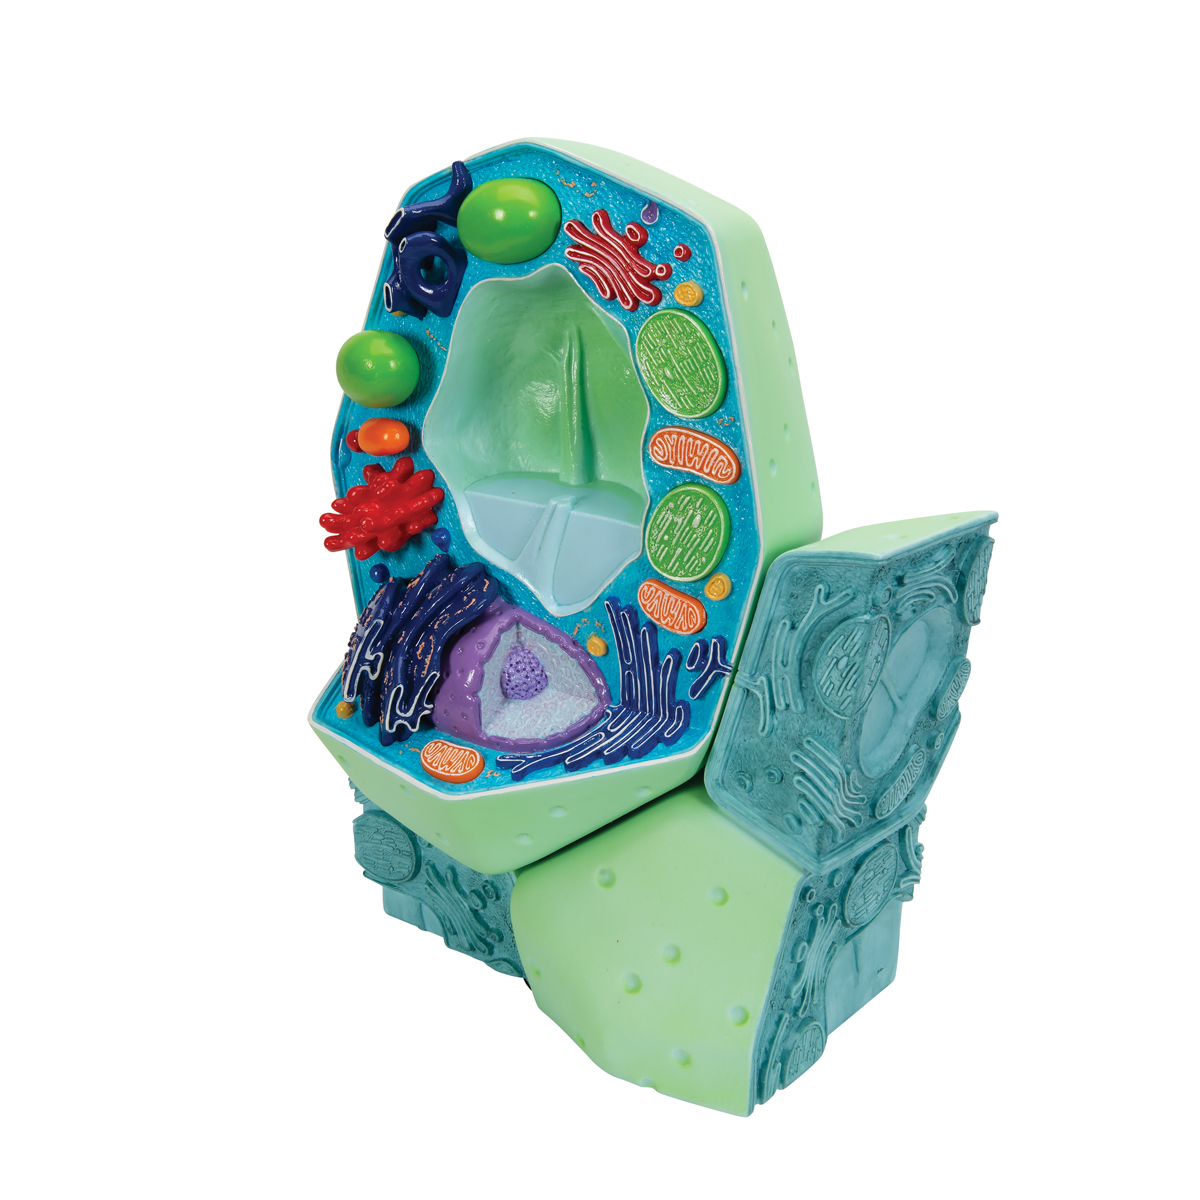 Ribosomes In A Plant Cell Plant Cell Model | Pla...